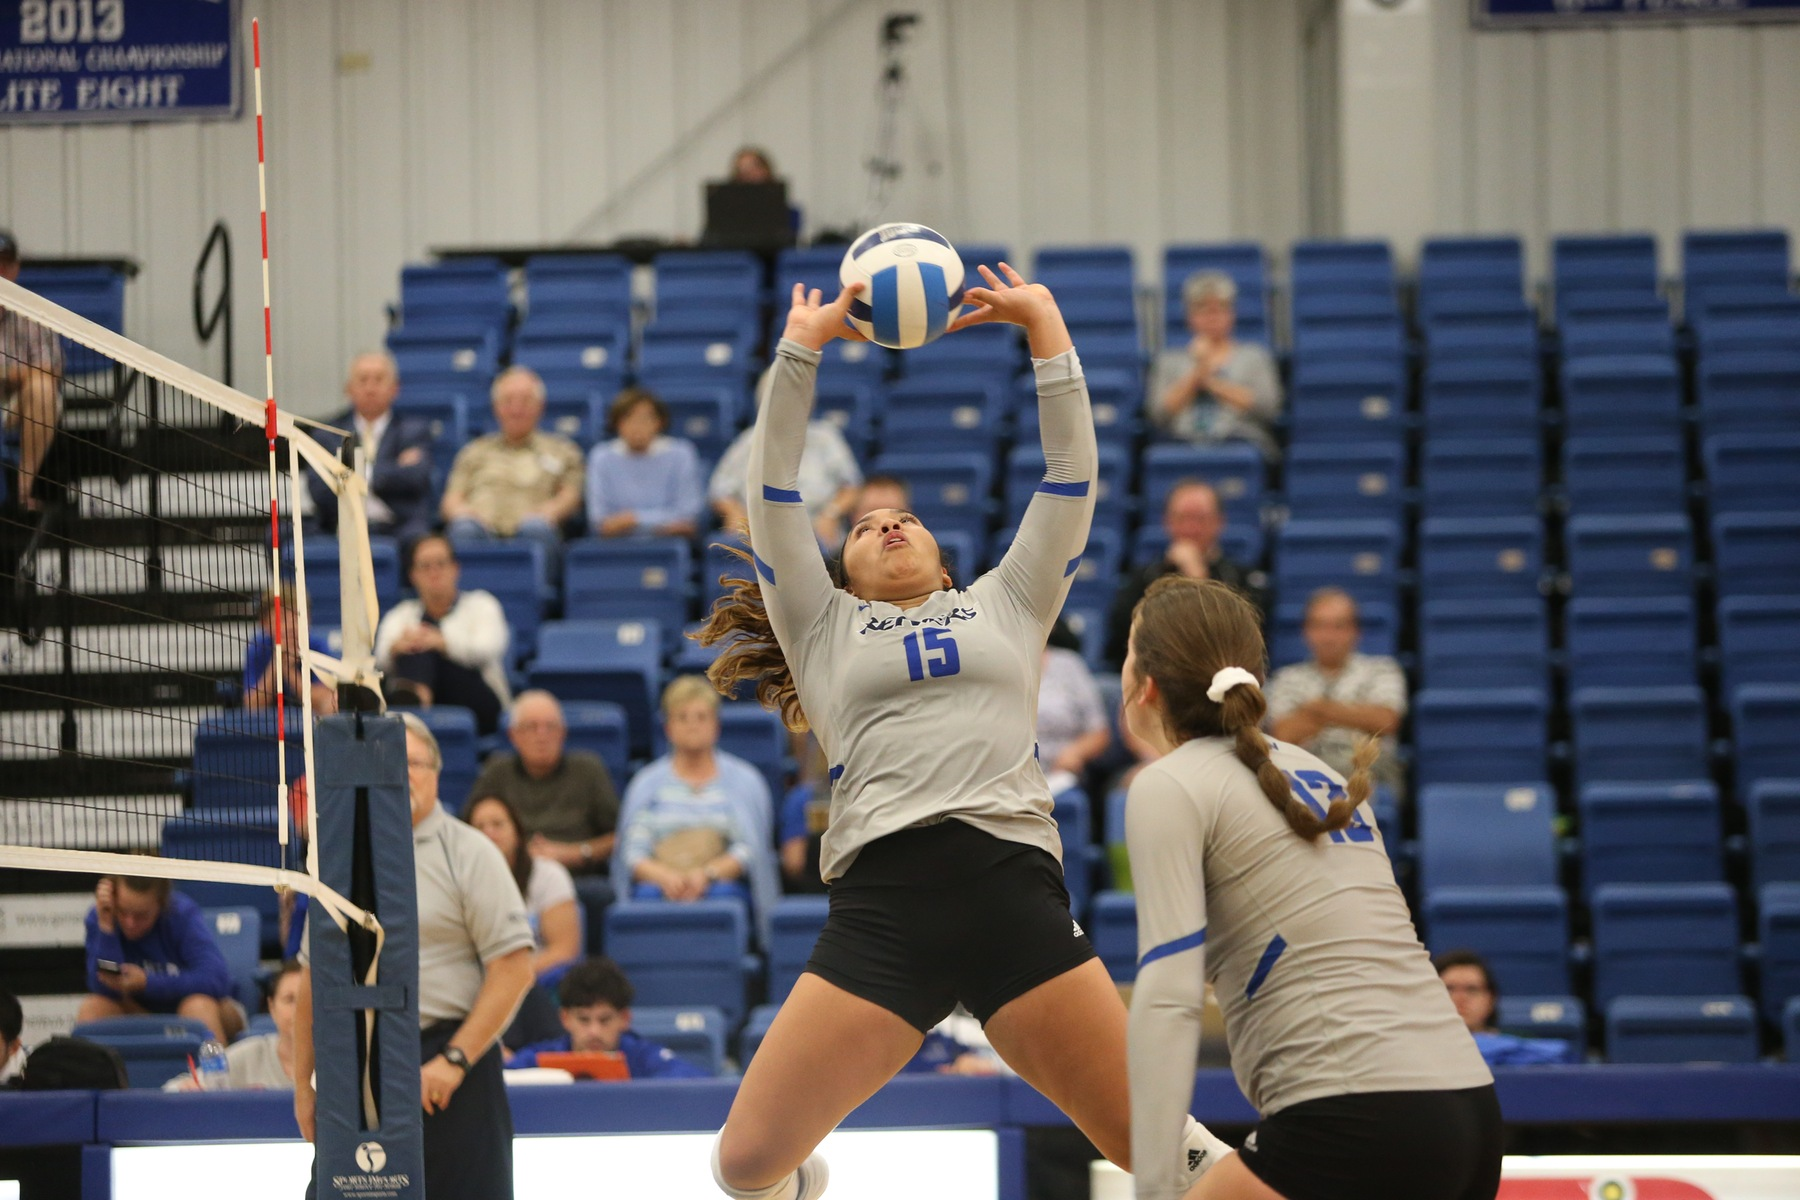 Iowa Western secures conference title